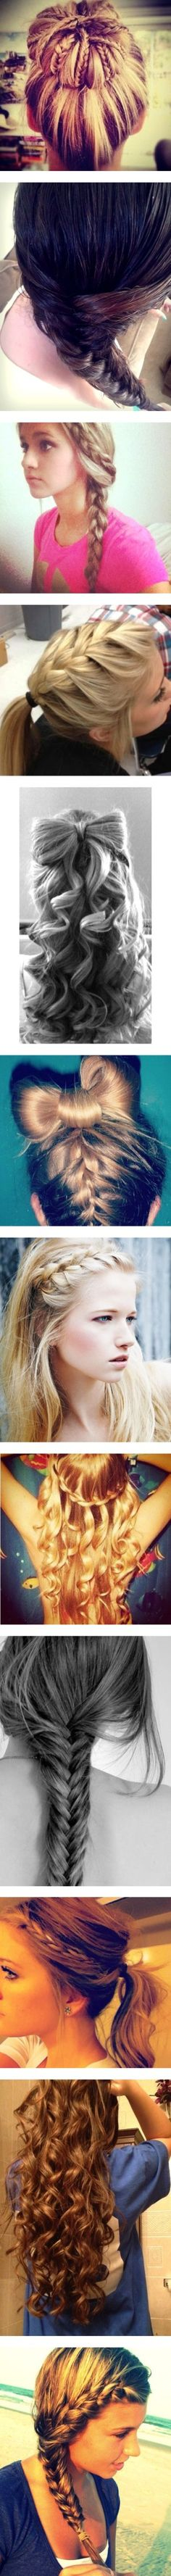 braids and curls Love Hair, Great Hair, Awesome Hair, Pretty Hairstyles, Braided Hairstyles, Hairstyle Ideas, Prom Hairstyles, Braids With Curls, Her Hair